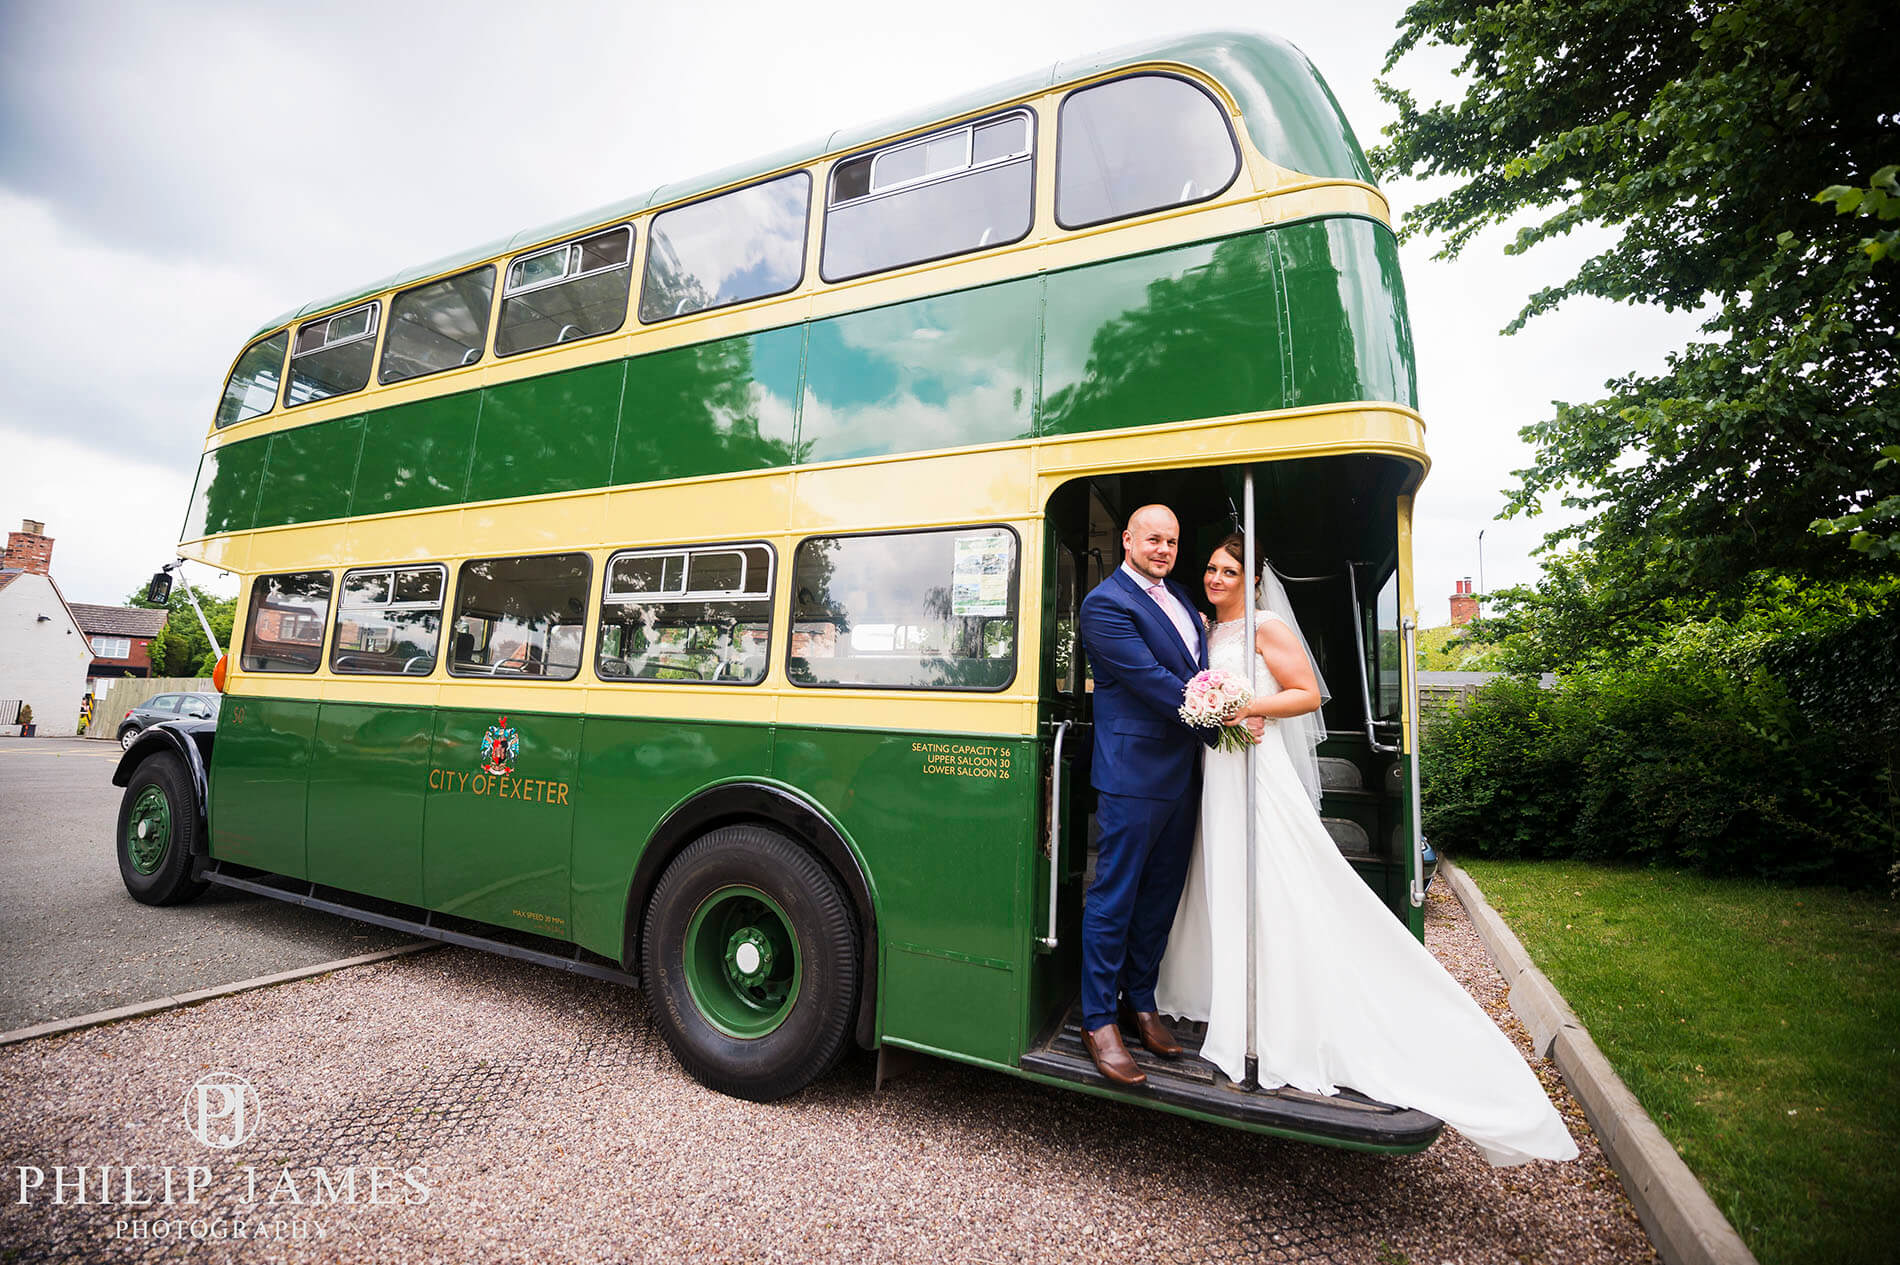 Birmingham Wedding Photographer - Philip James Photography based in Solihull (7 of 68)